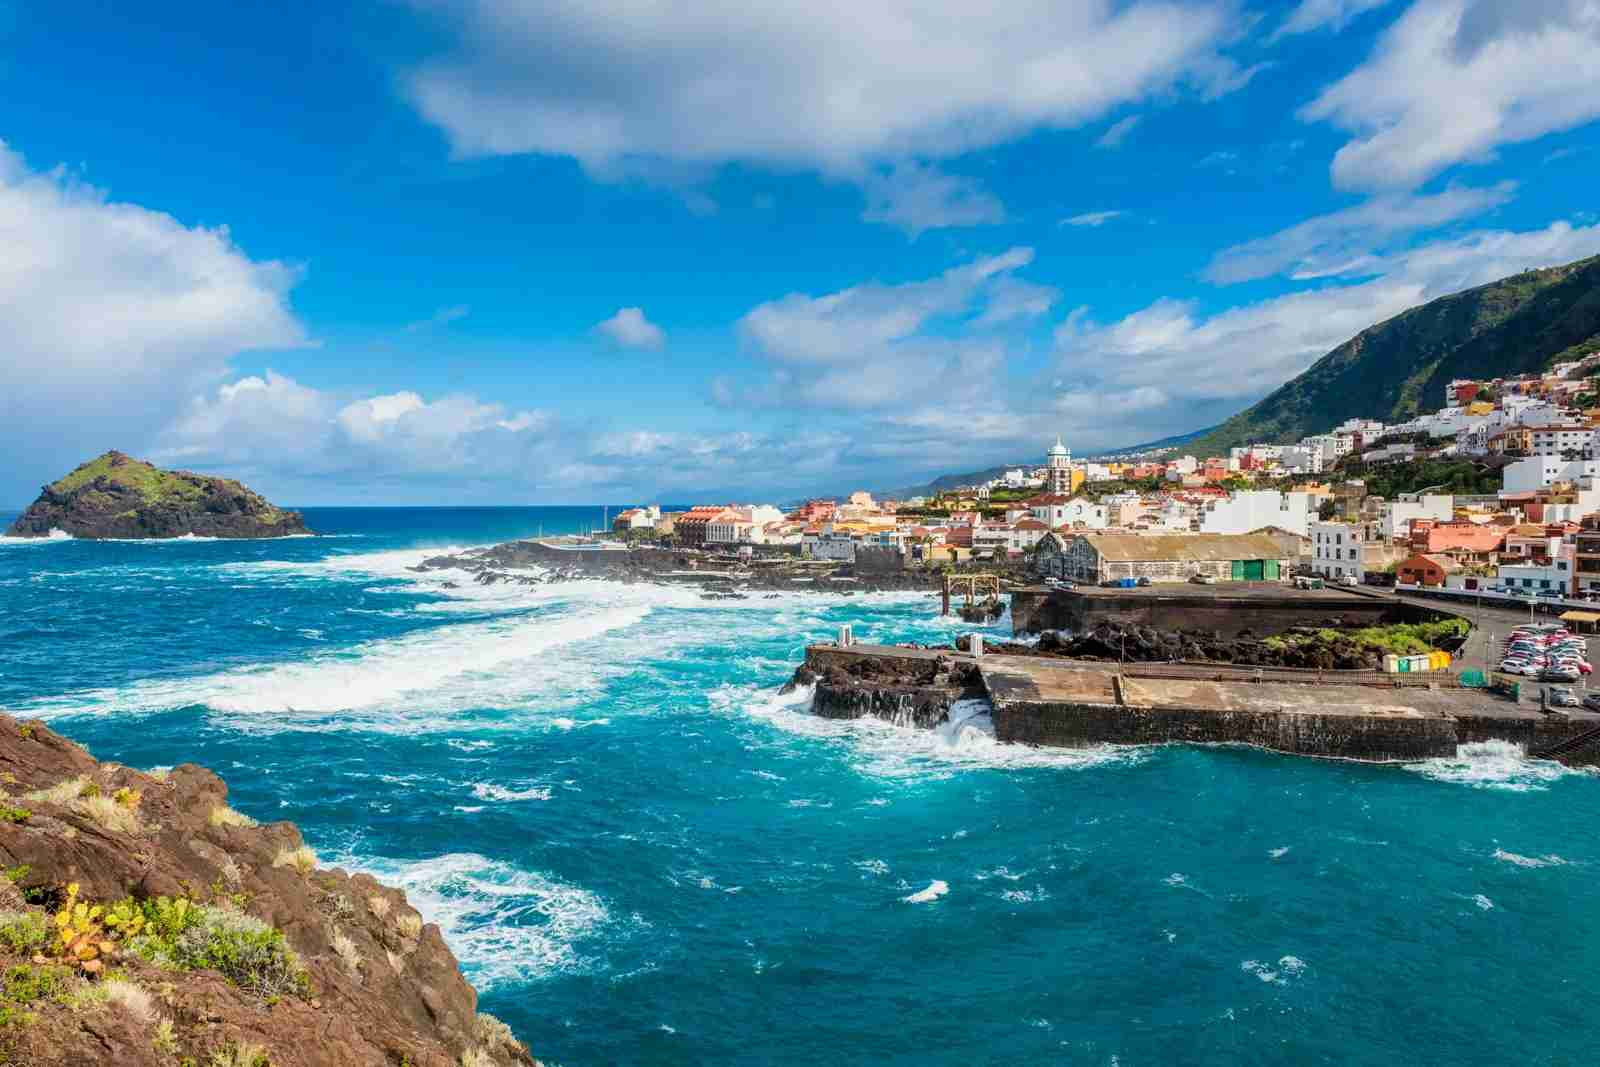 Tenerife, Canary Islands, Spain. (Photo by © Allard Schager/Getty Images)